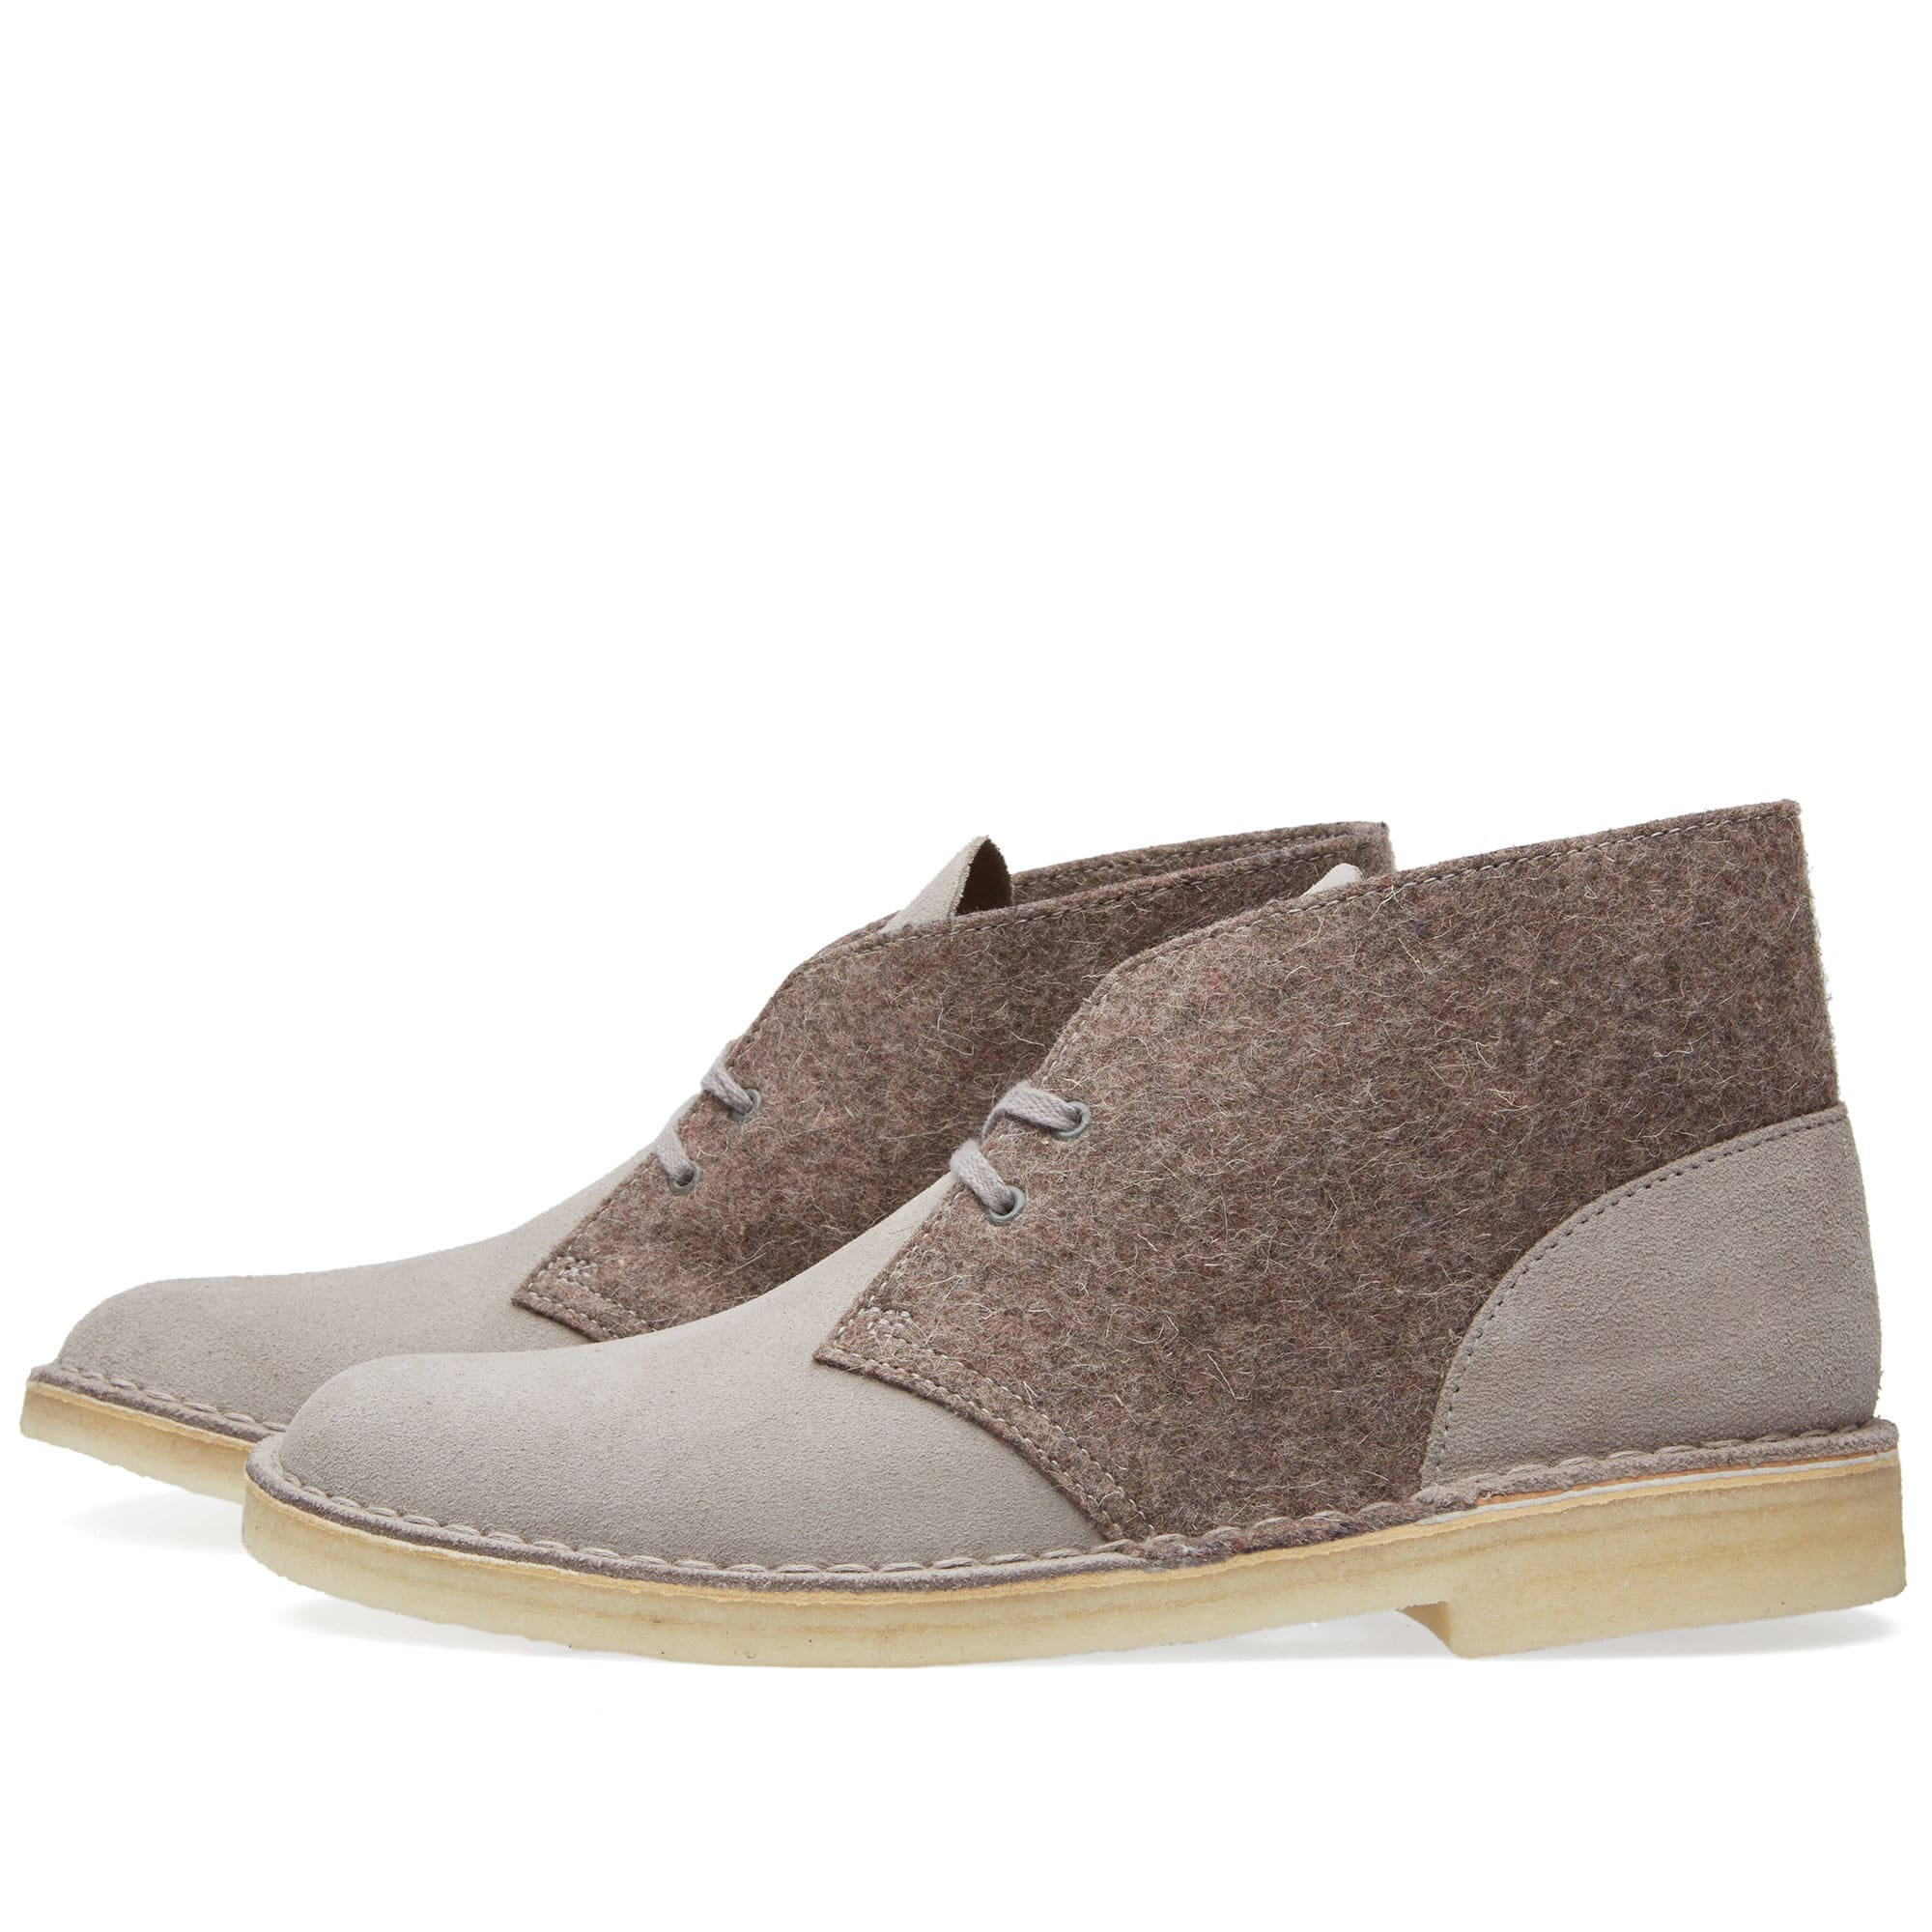 clarks originals desert boot grey felt. Black Bedroom Furniture Sets. Home Design Ideas